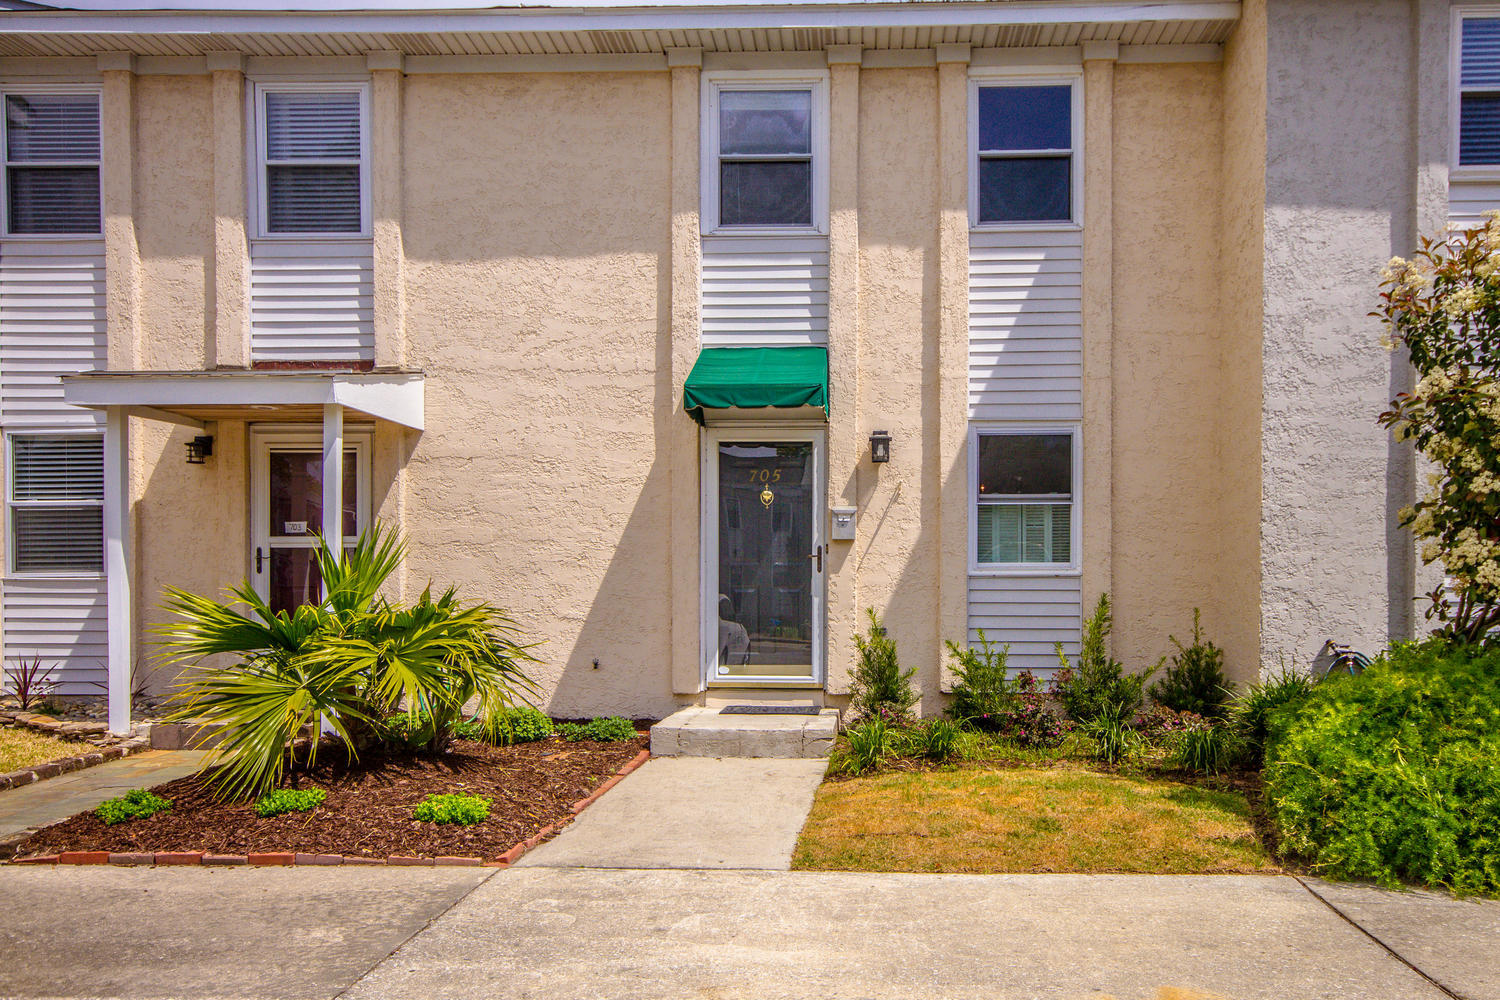 Cove Inlet Homes For Sale - 705 Davenport, Mount Pleasant, SC - 25